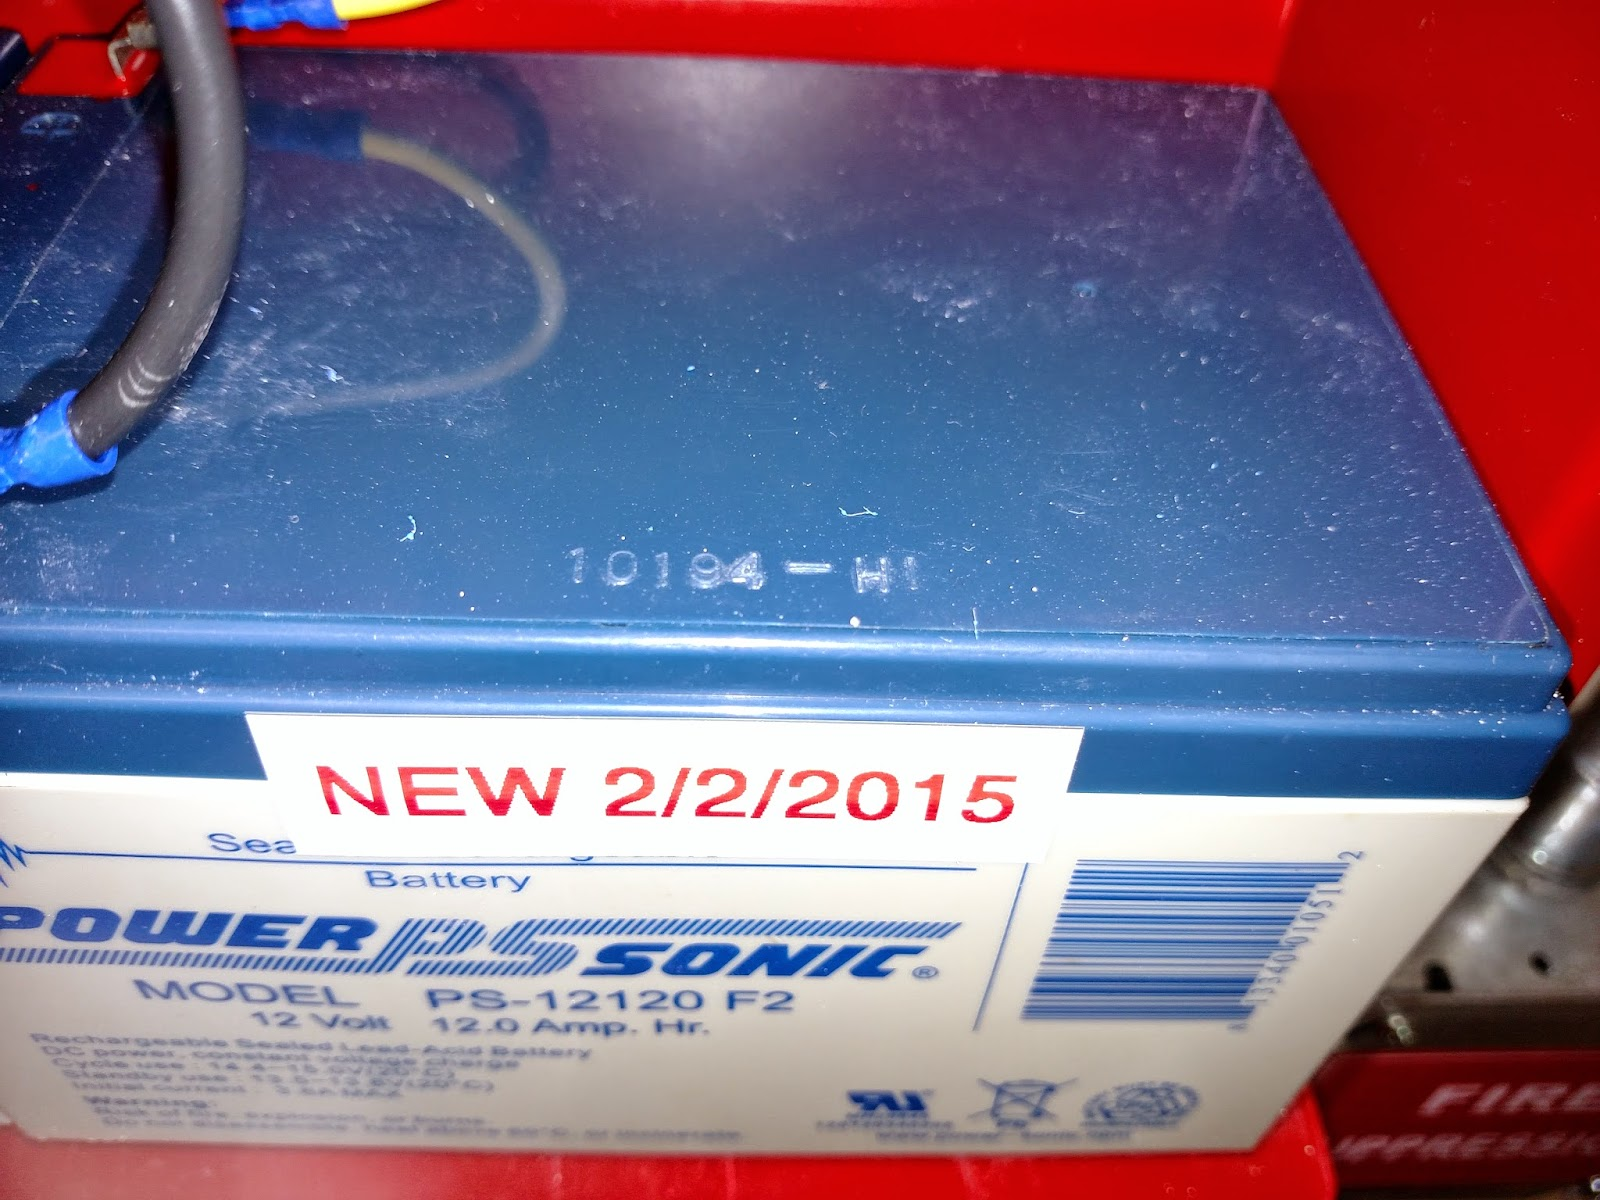 Fire Alarm Battery Dated Incorrectly